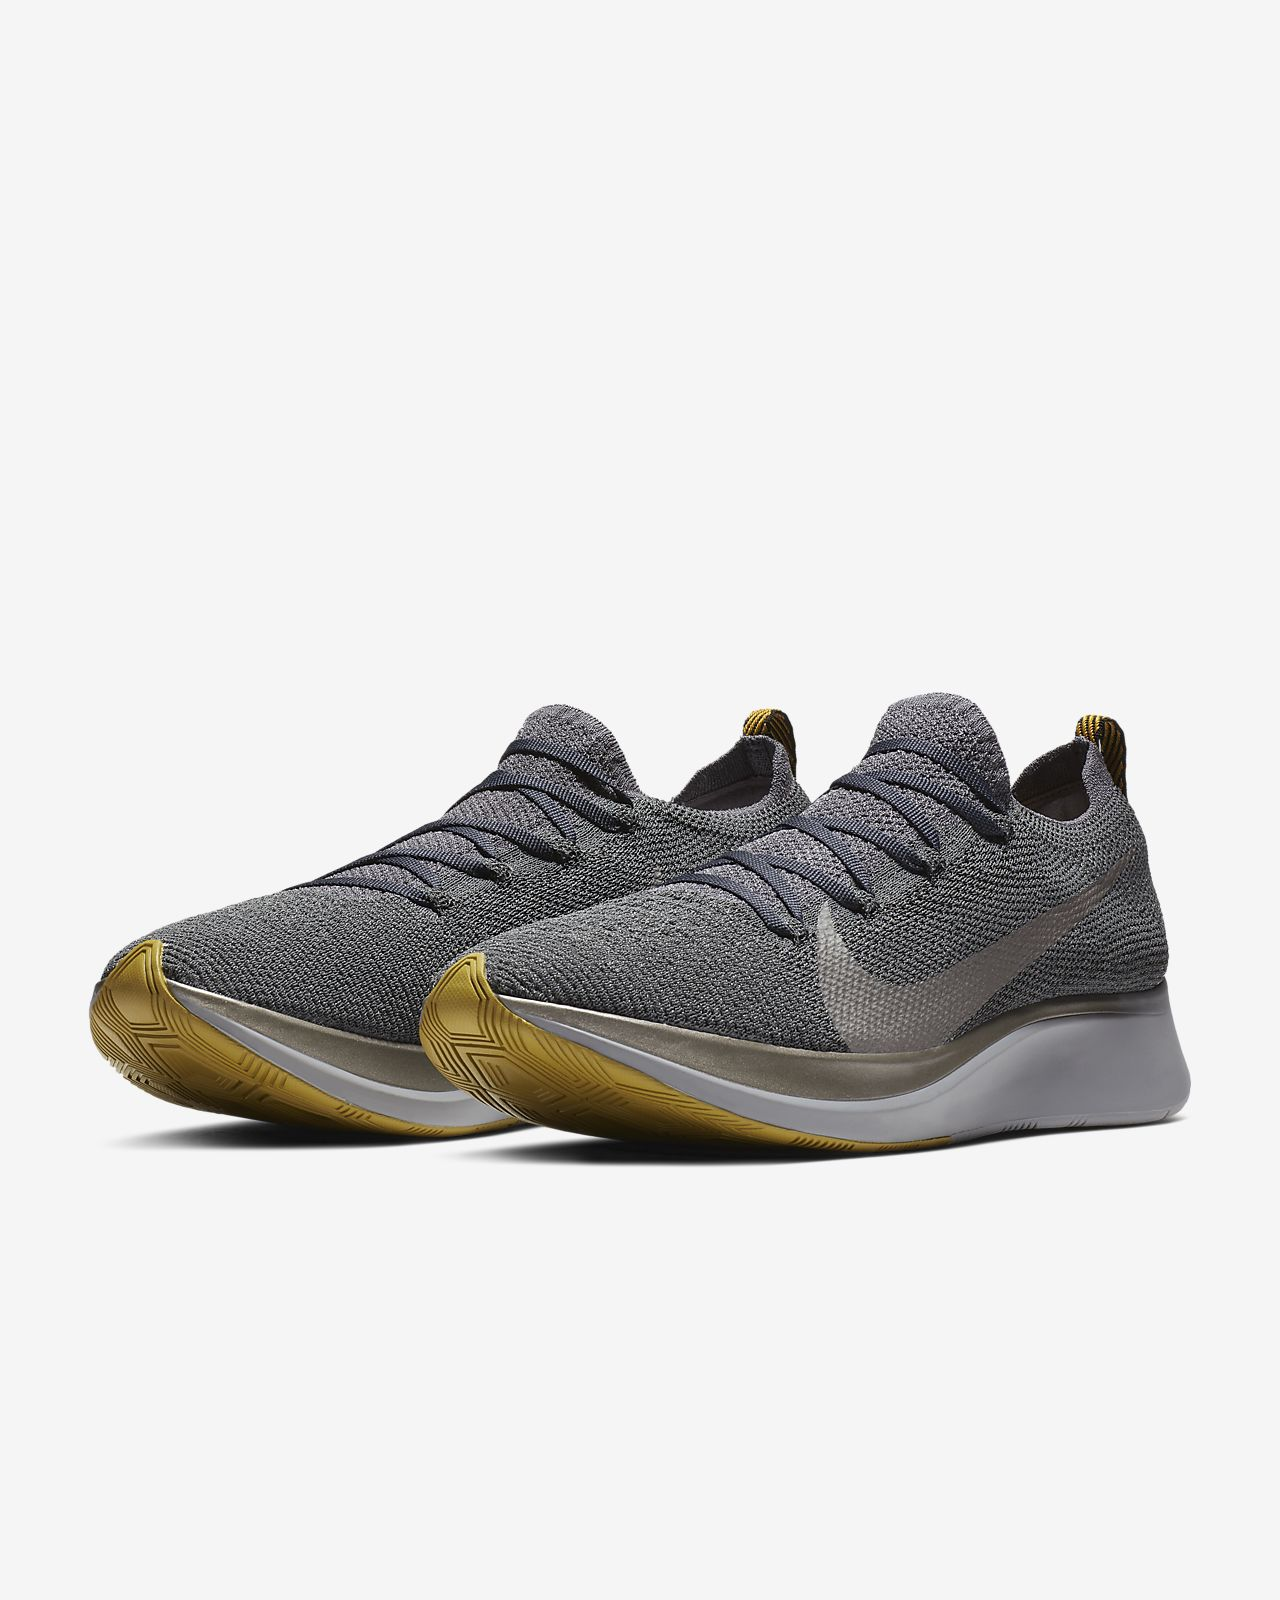 new style 4db0c 5e5b7 ... Chaussure de running Nike Zoom Fly Flyknit pour Homme